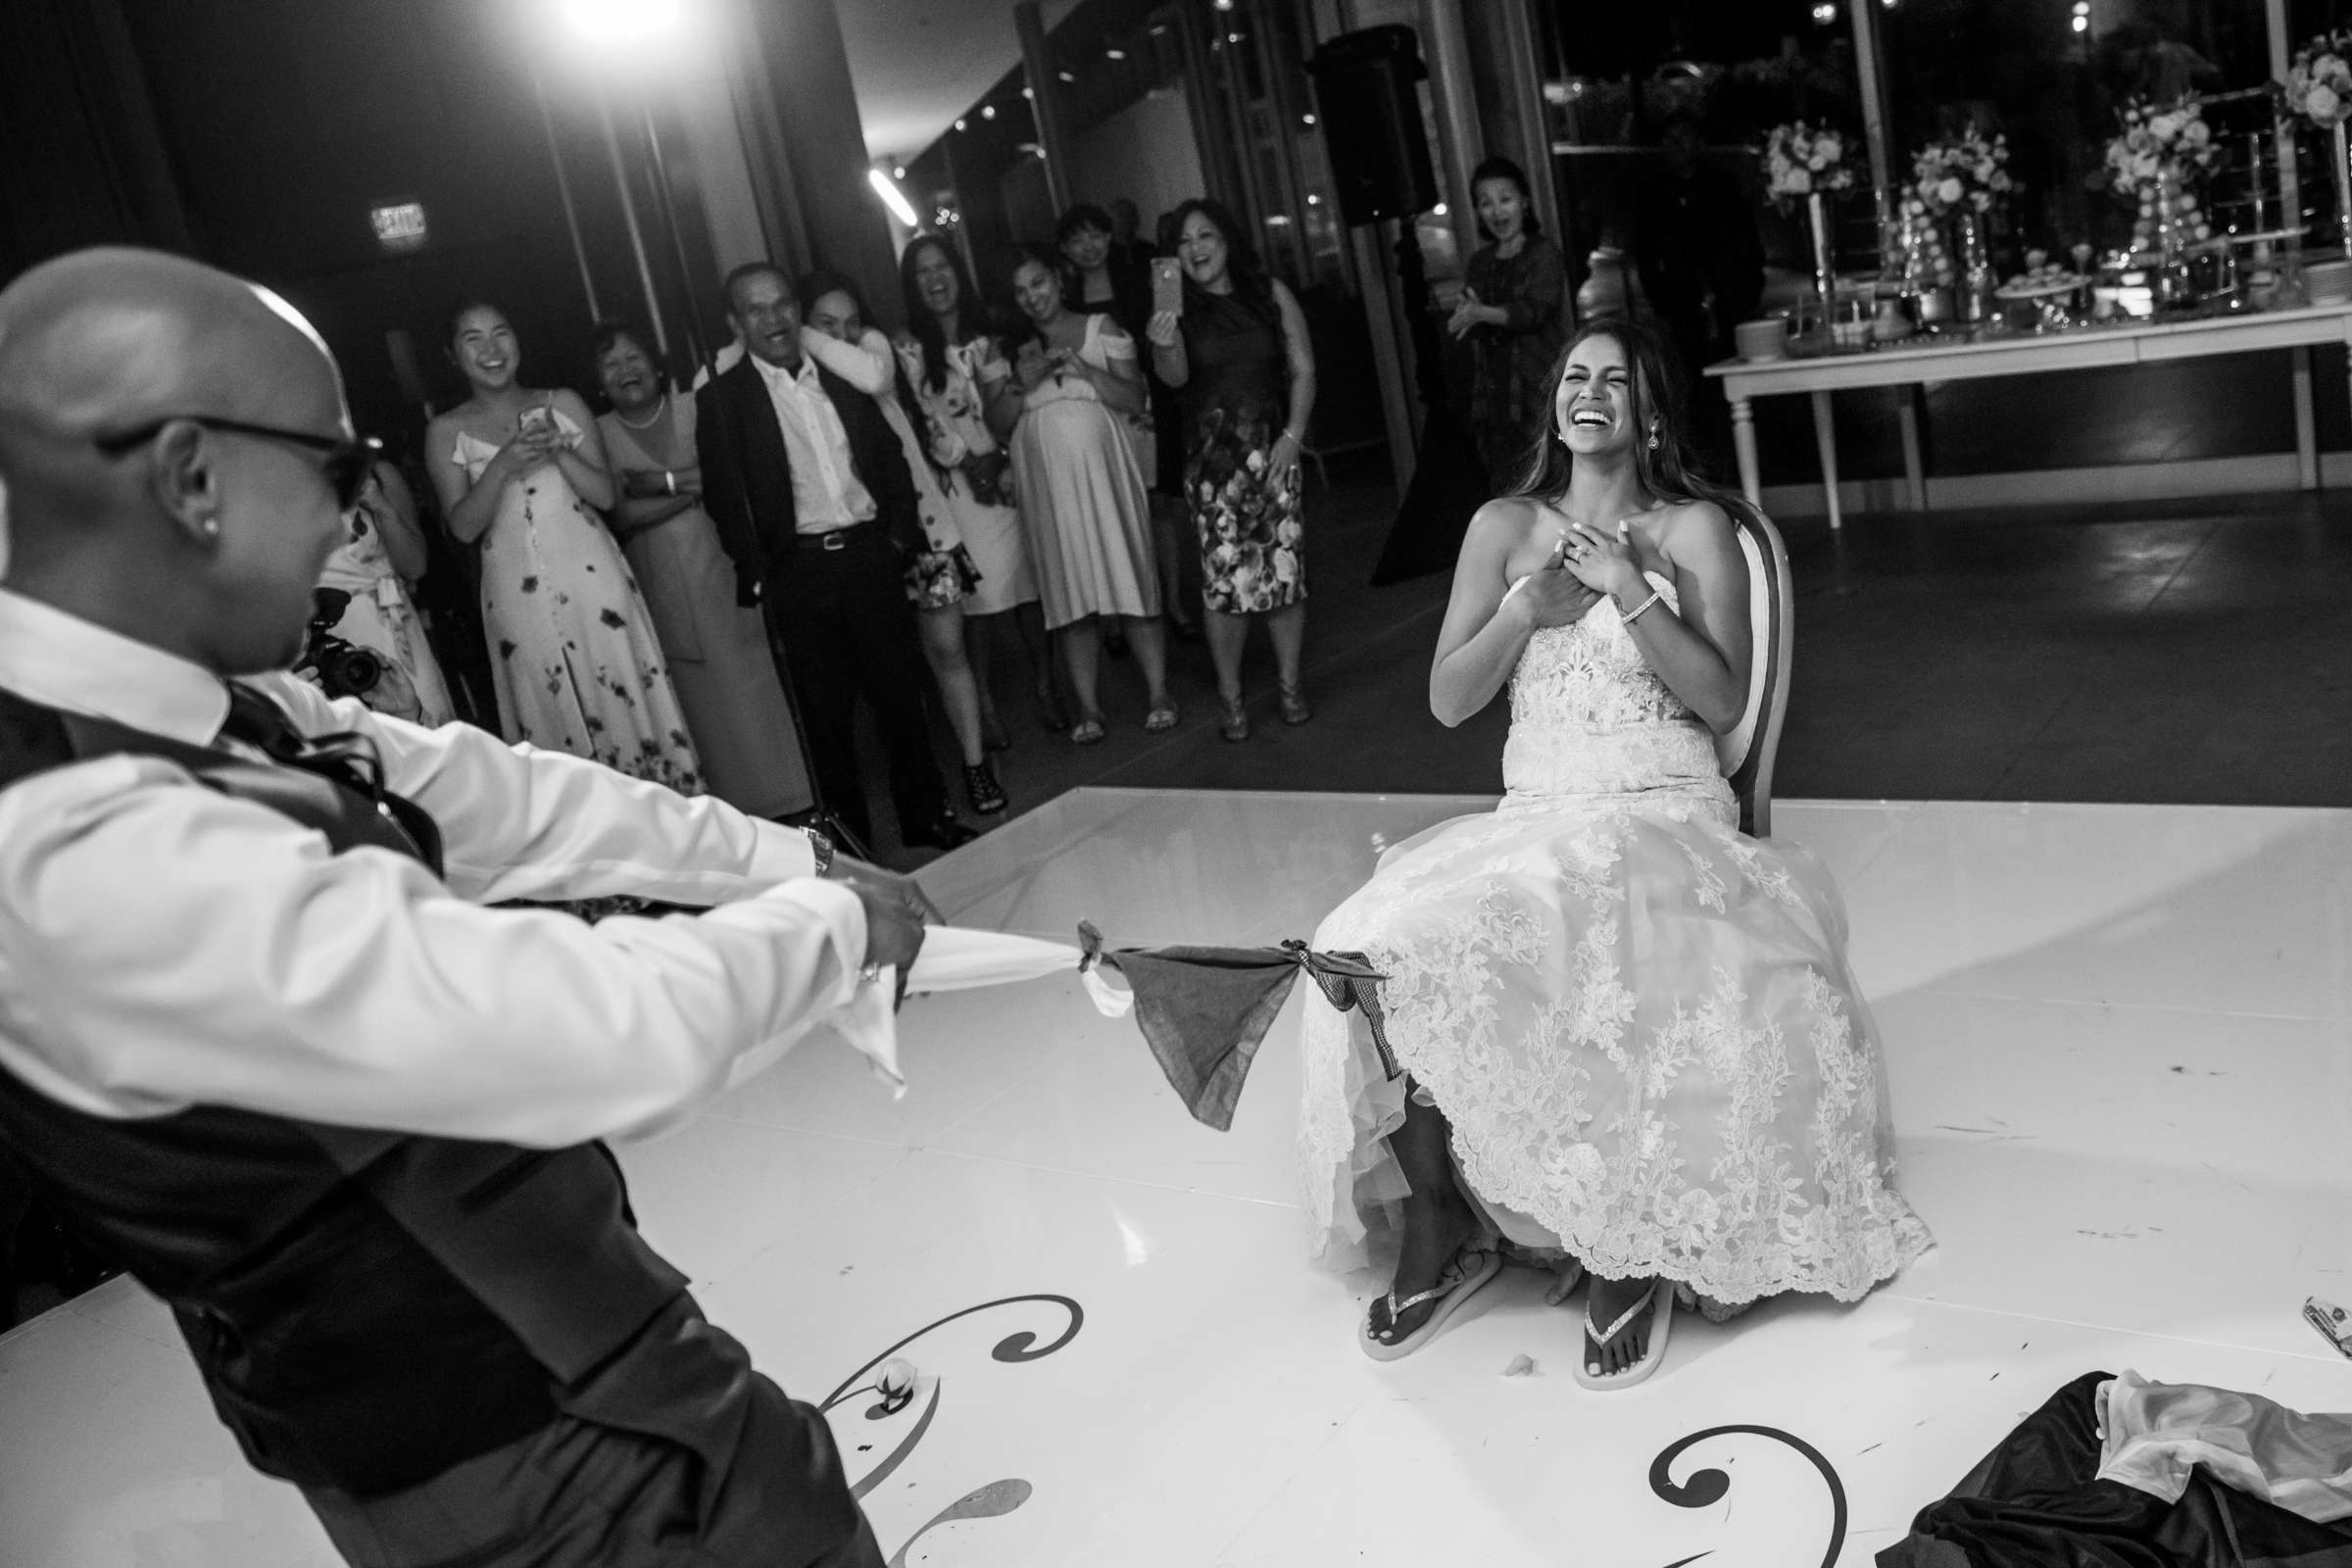 Scripps Seaside Forum Wedding coordinated by Lavish Weddings, Cindy and Justin Wedding Photo #381888 by True Photography